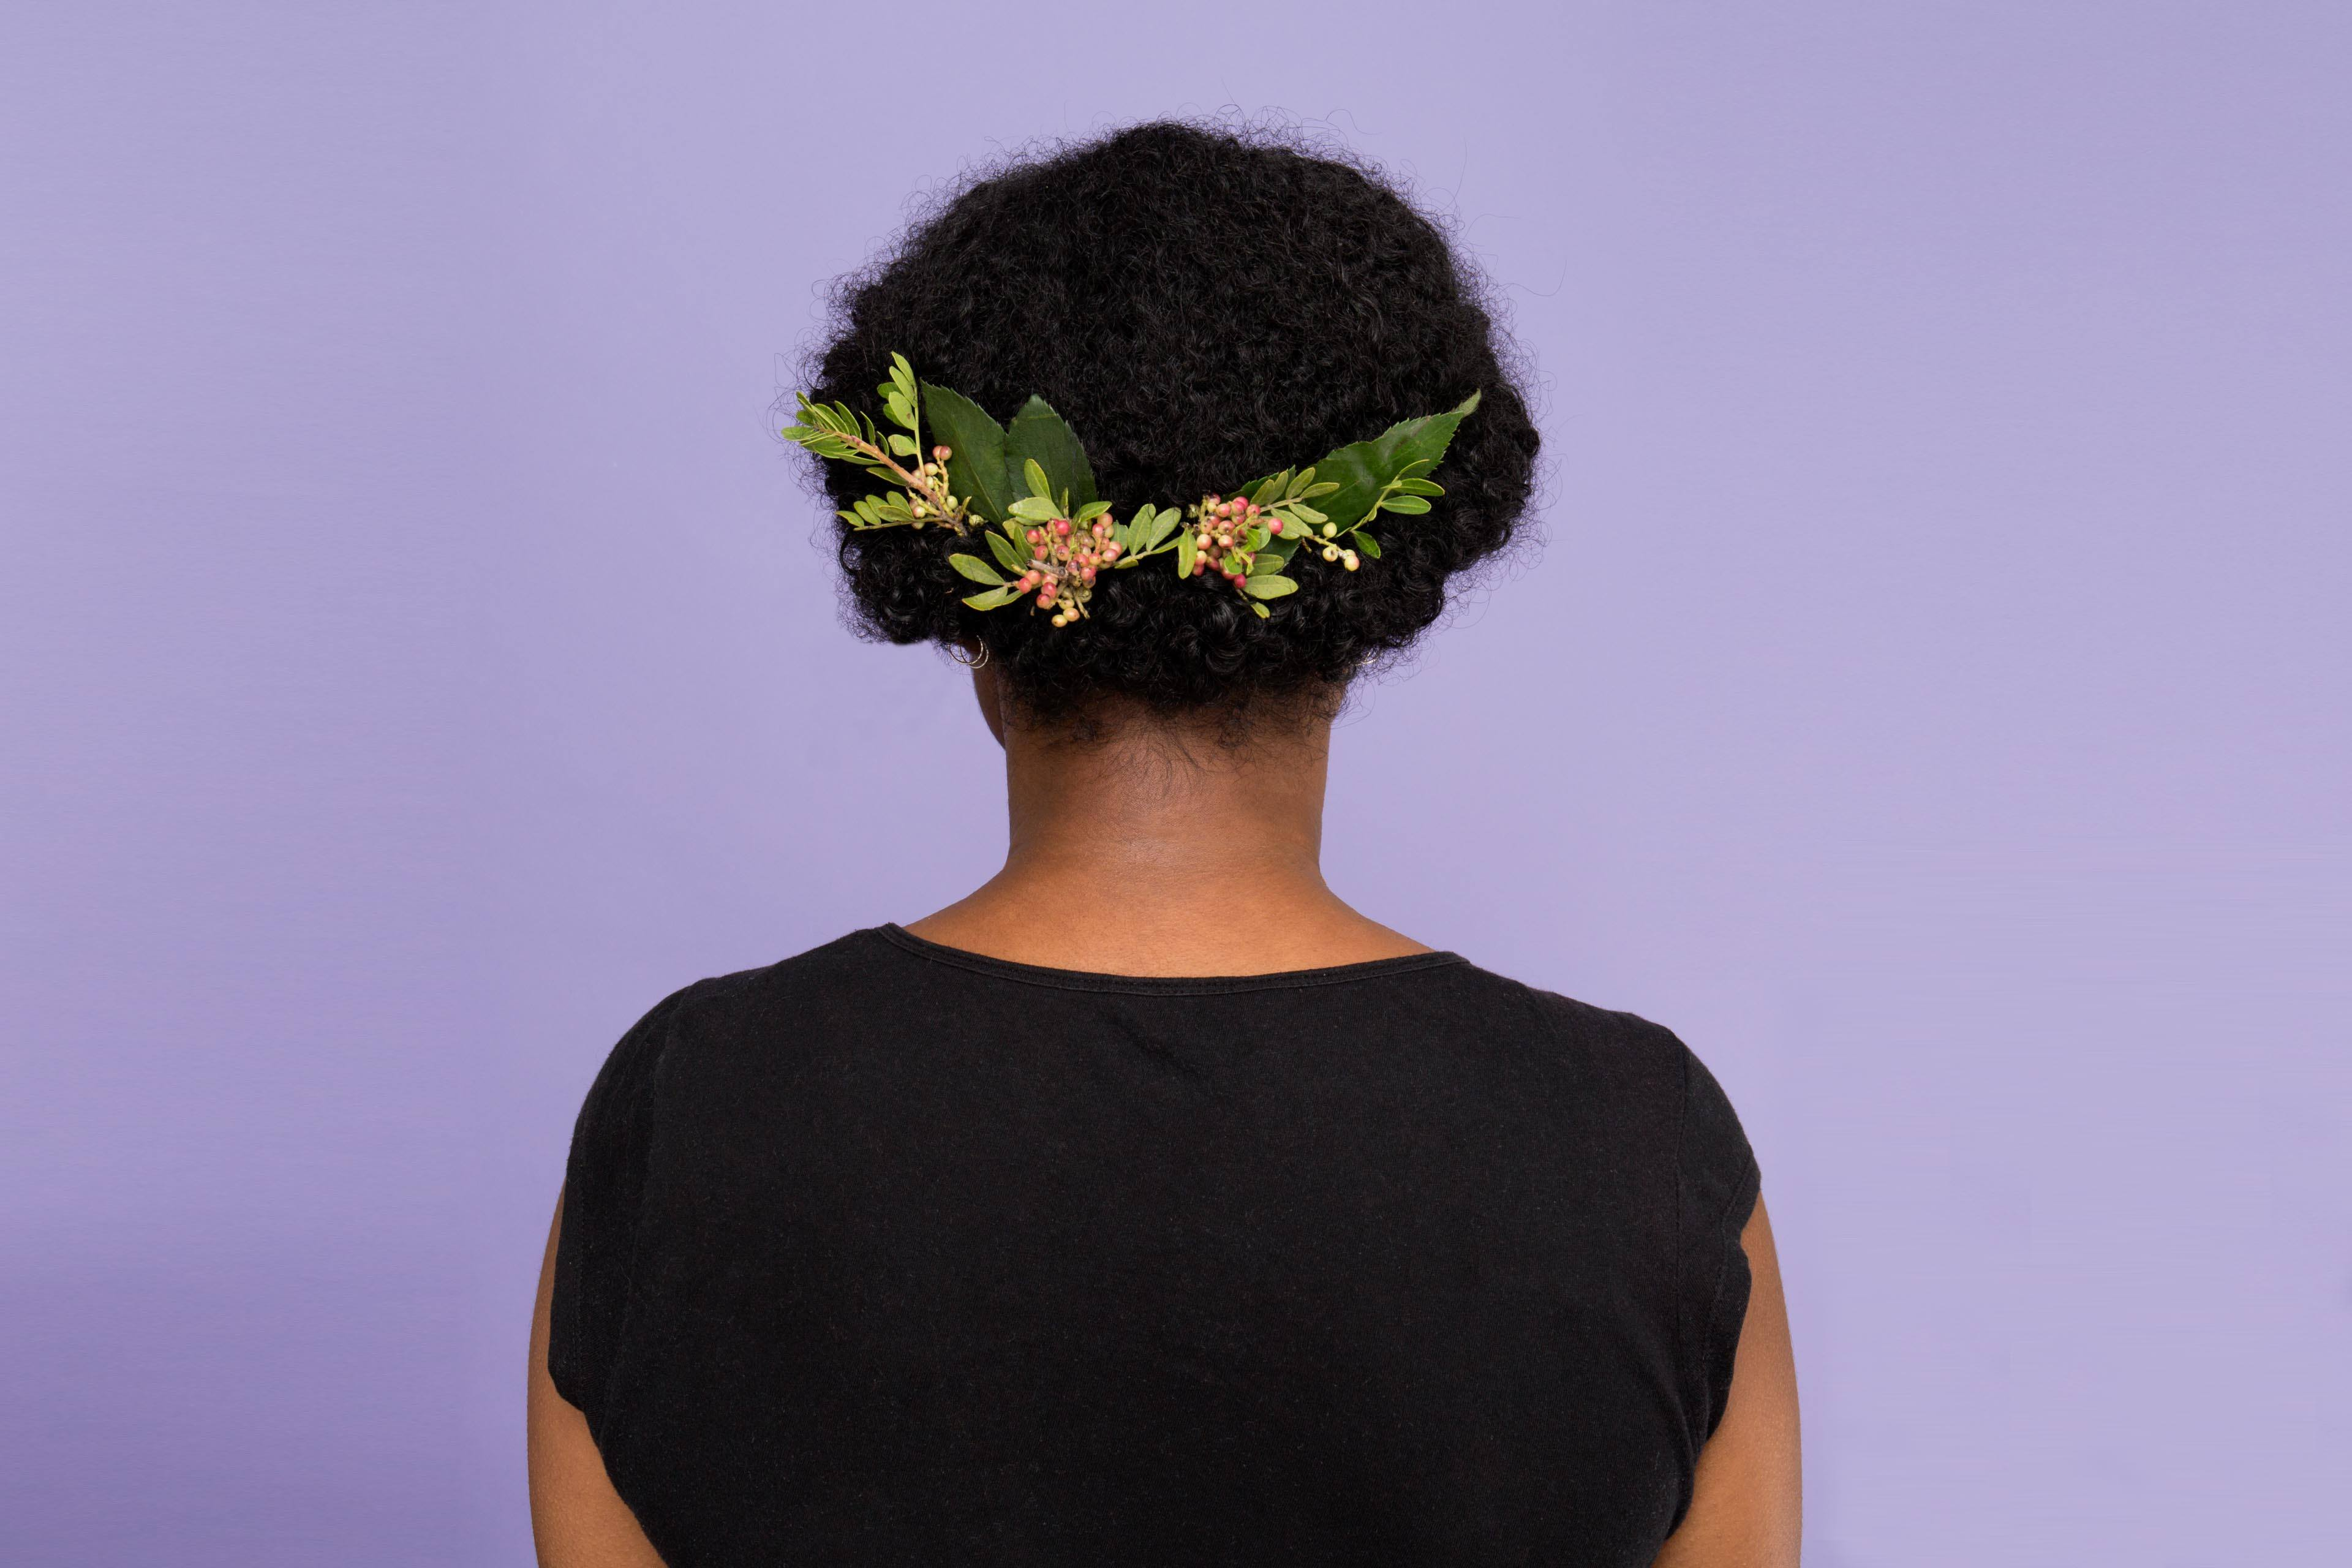 Curly wedding hair: Back view of a woman with her dark afro hair worn in a chignon bun with a floral hair accessory attached